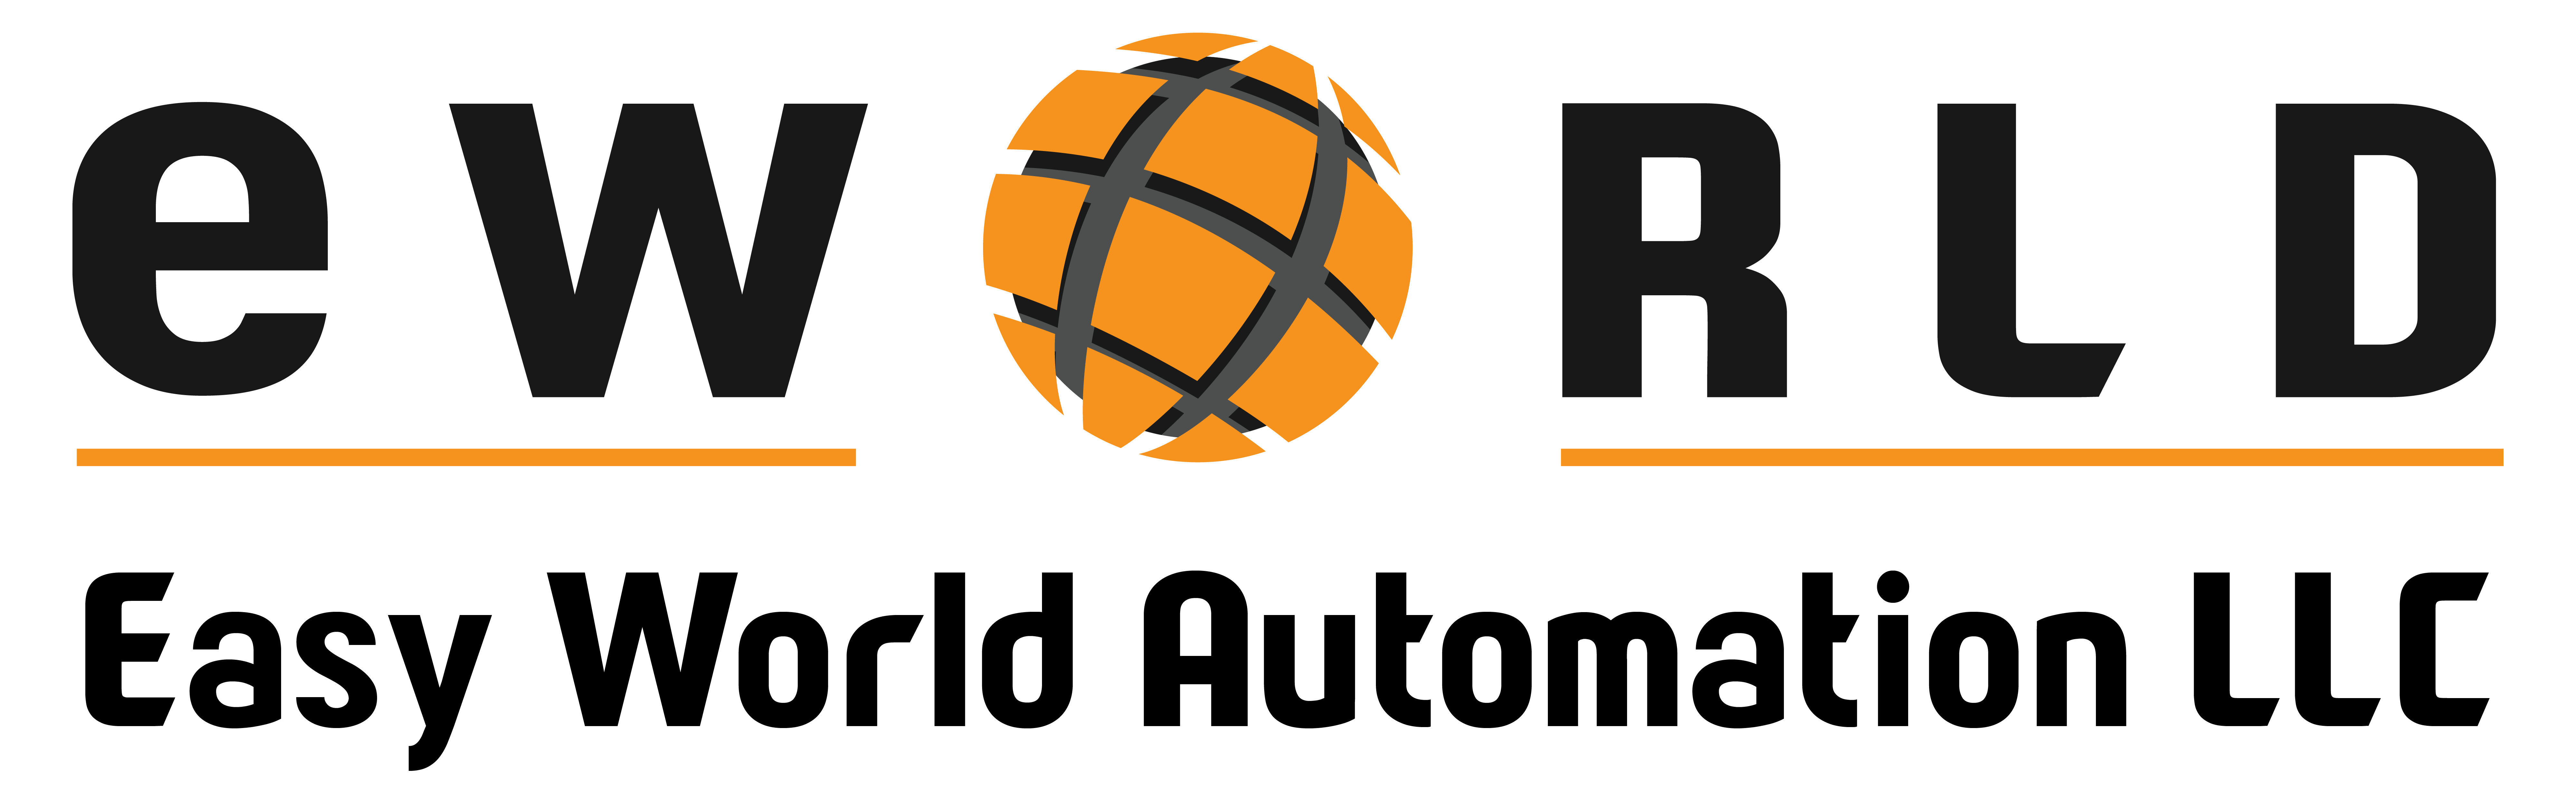 Easy World Automation